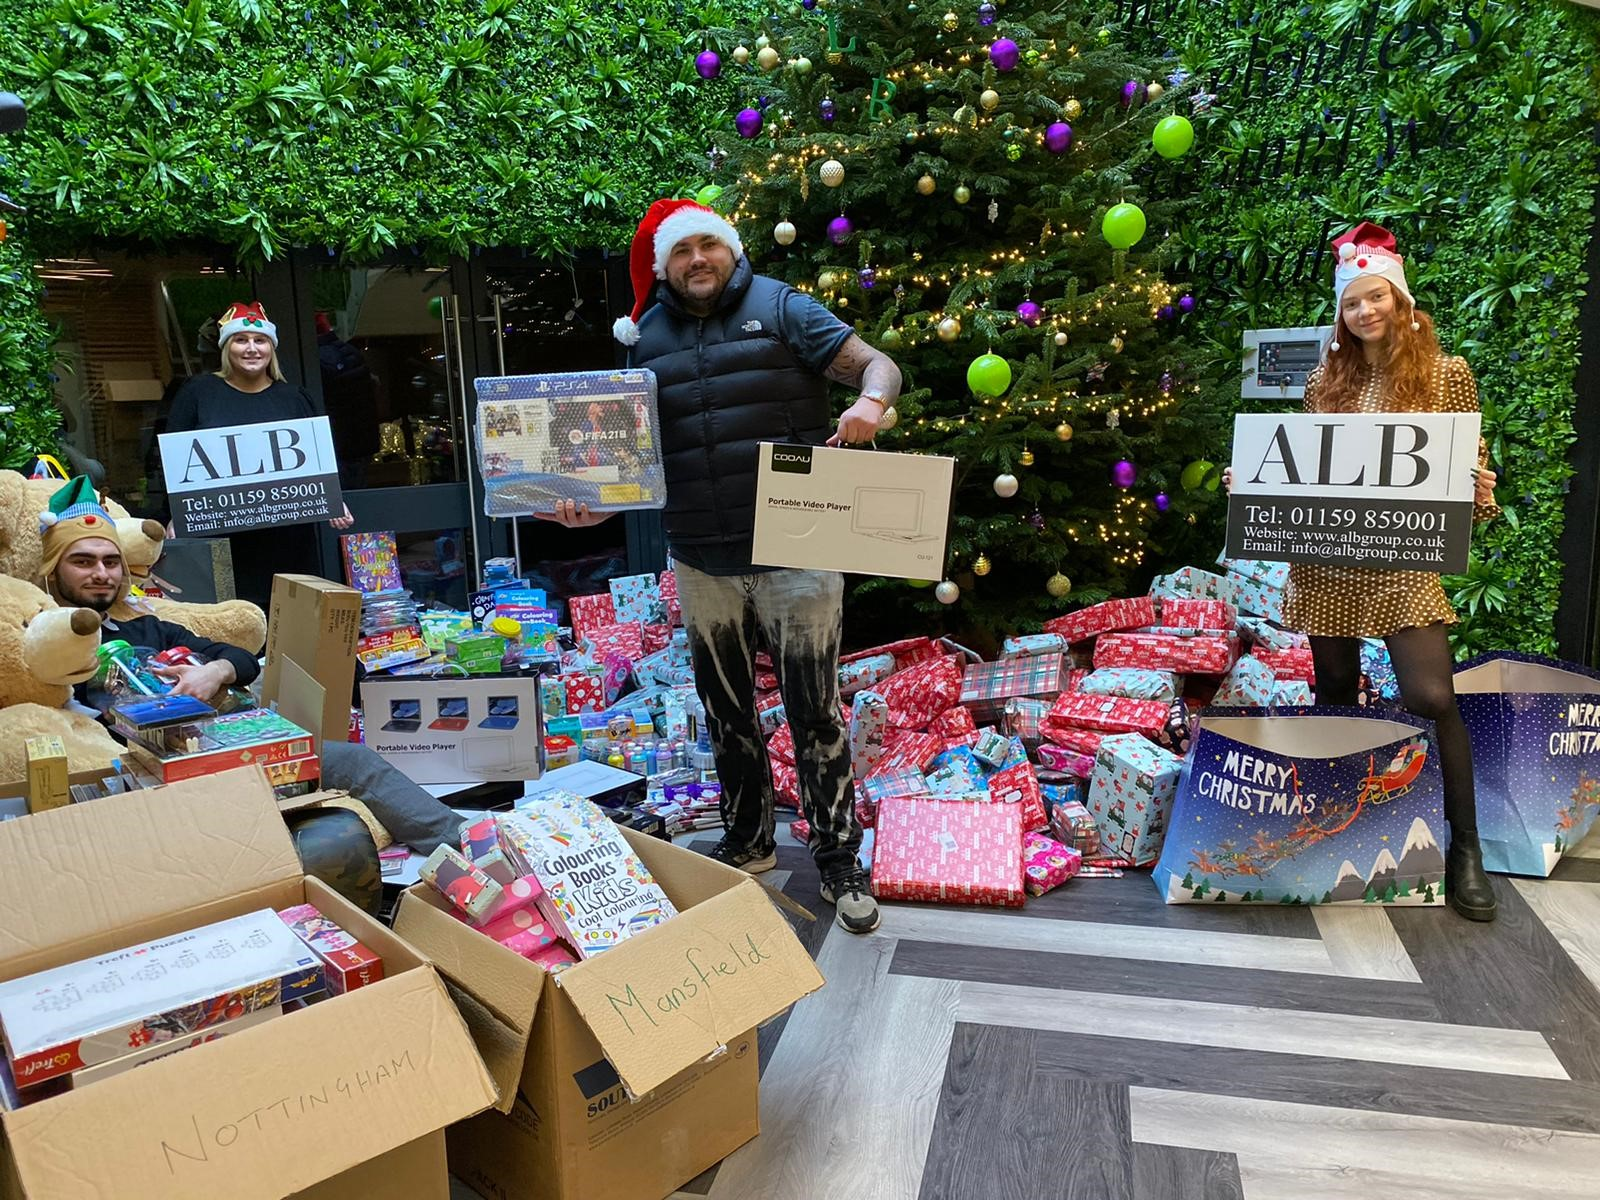 ALB Group Delivers Christmas Cheer